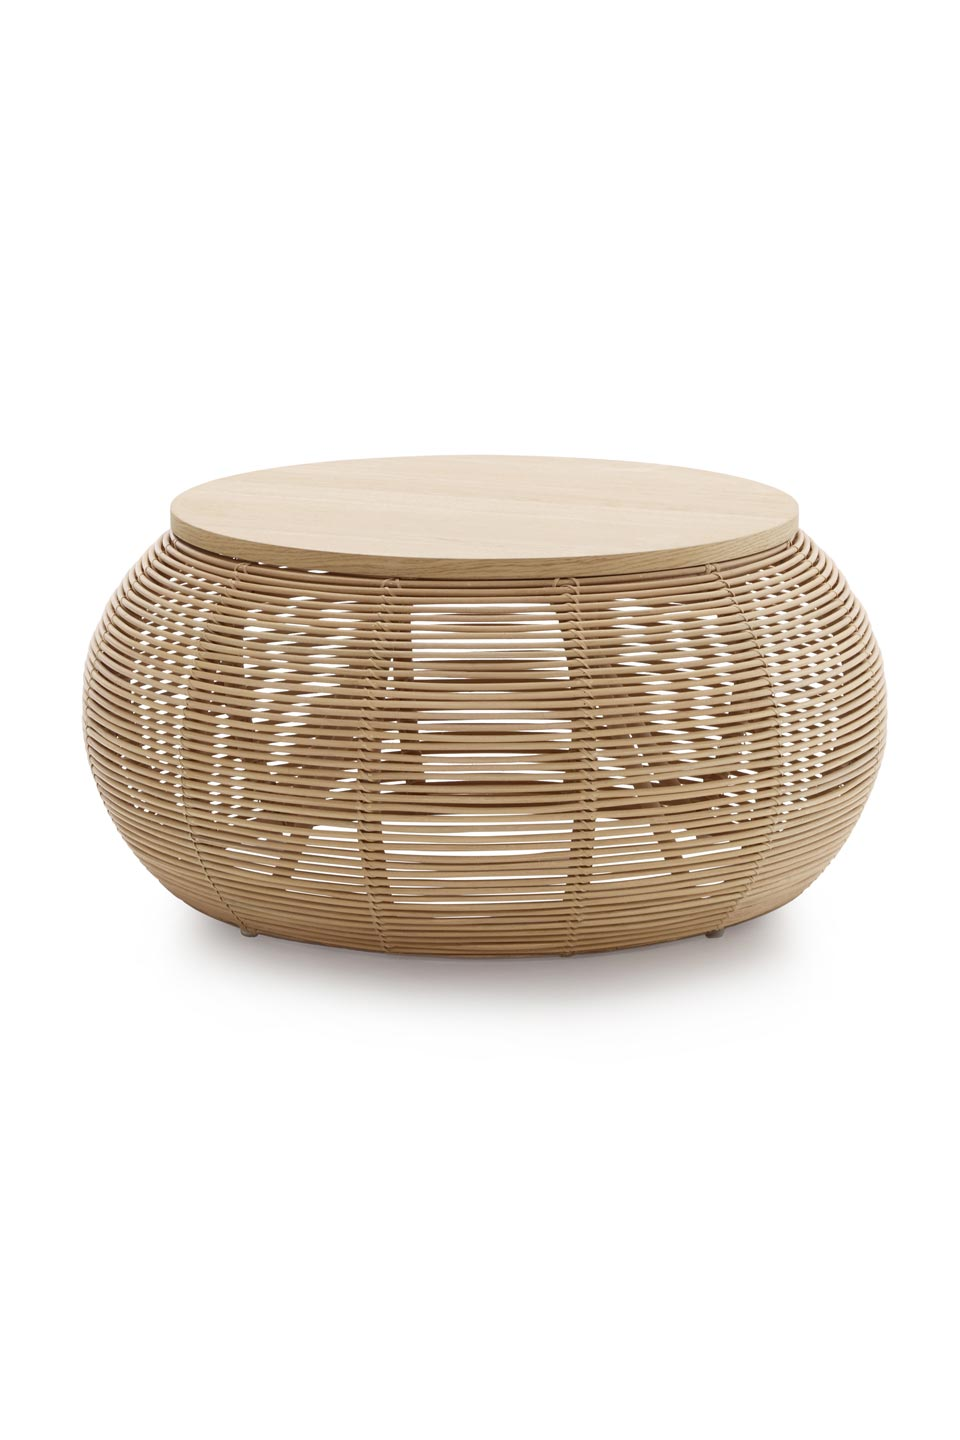 Vivi small coffee table in natural rattan. Vincent Sheppard.